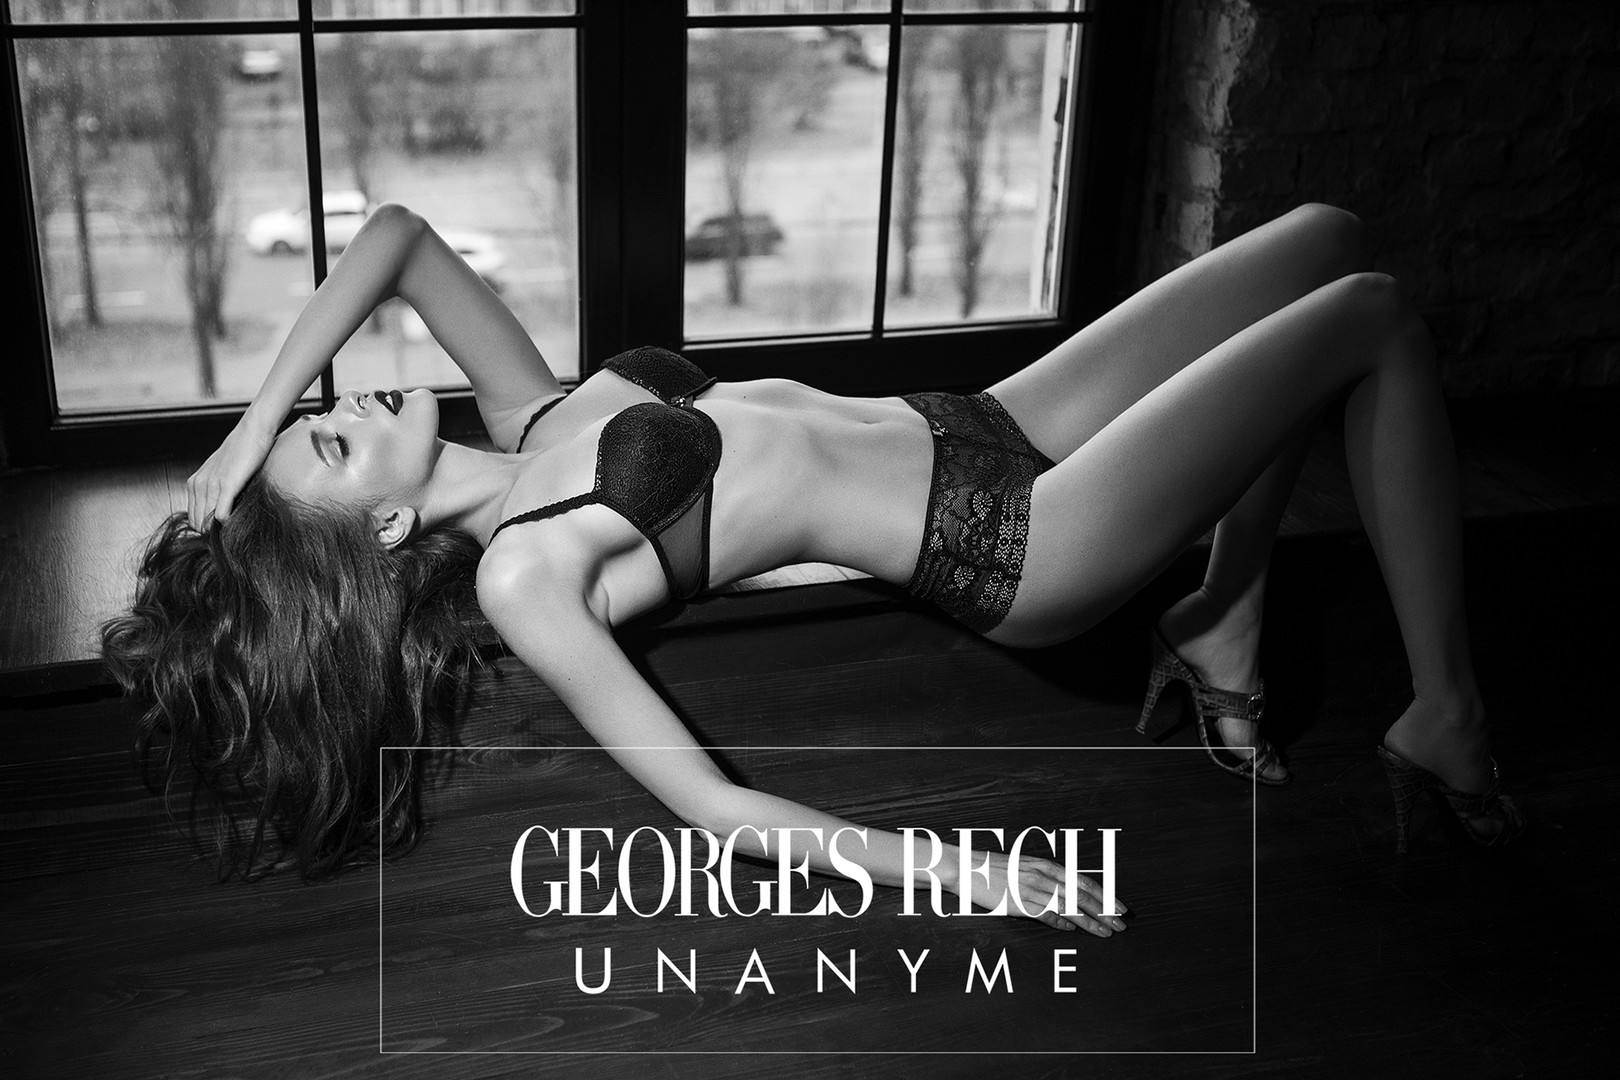 unanyme georges rech lingerie fall winter 2017 2018 campaign. Black Bedroom Furniture Sets. Home Design Ideas